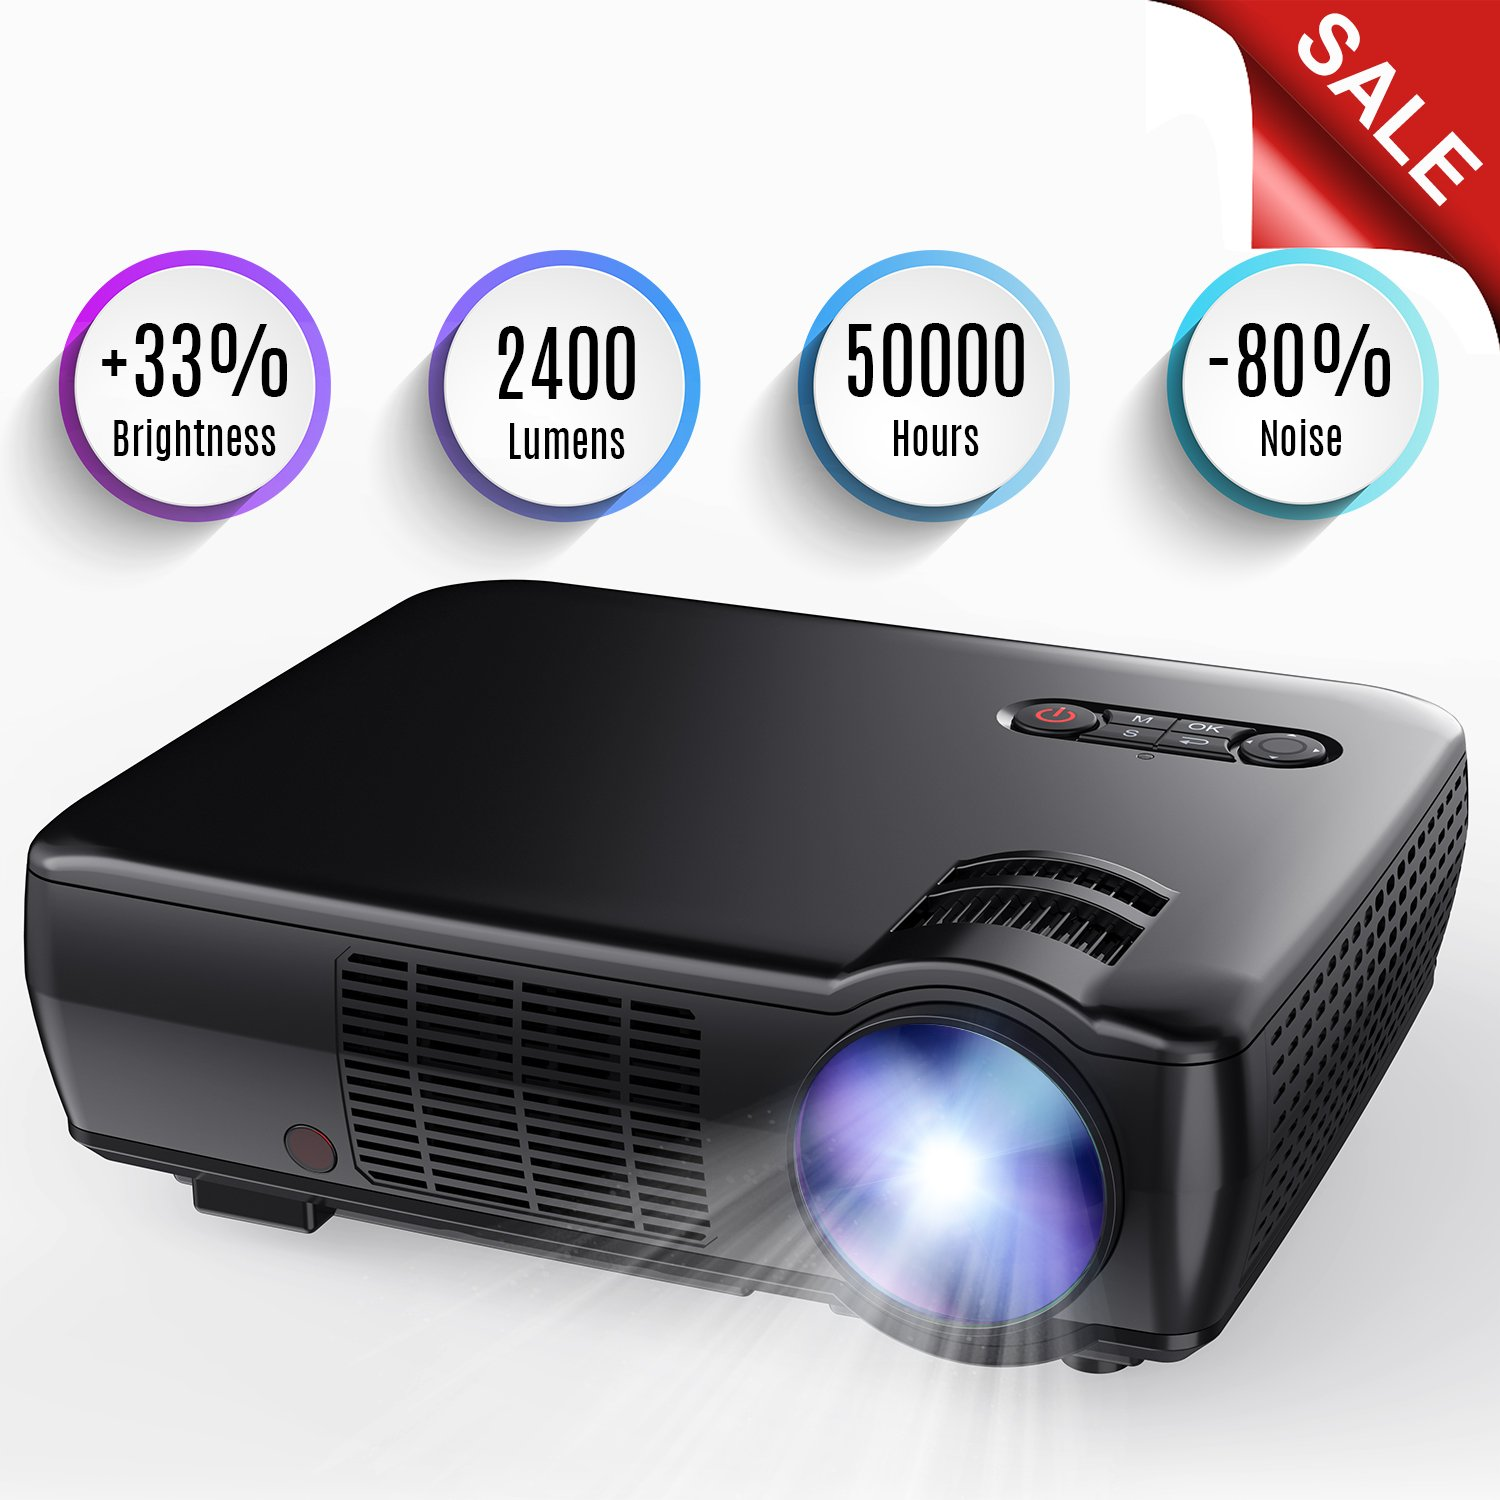 Projector, 2400 Lumens Portable Video Projector Mini Home Theater 5.0'' LCD Projector with 176'' Display Support 1080p HDMI VGA USB AV for Outdoor & Indoor Movie Nights, Video Games by TENKER